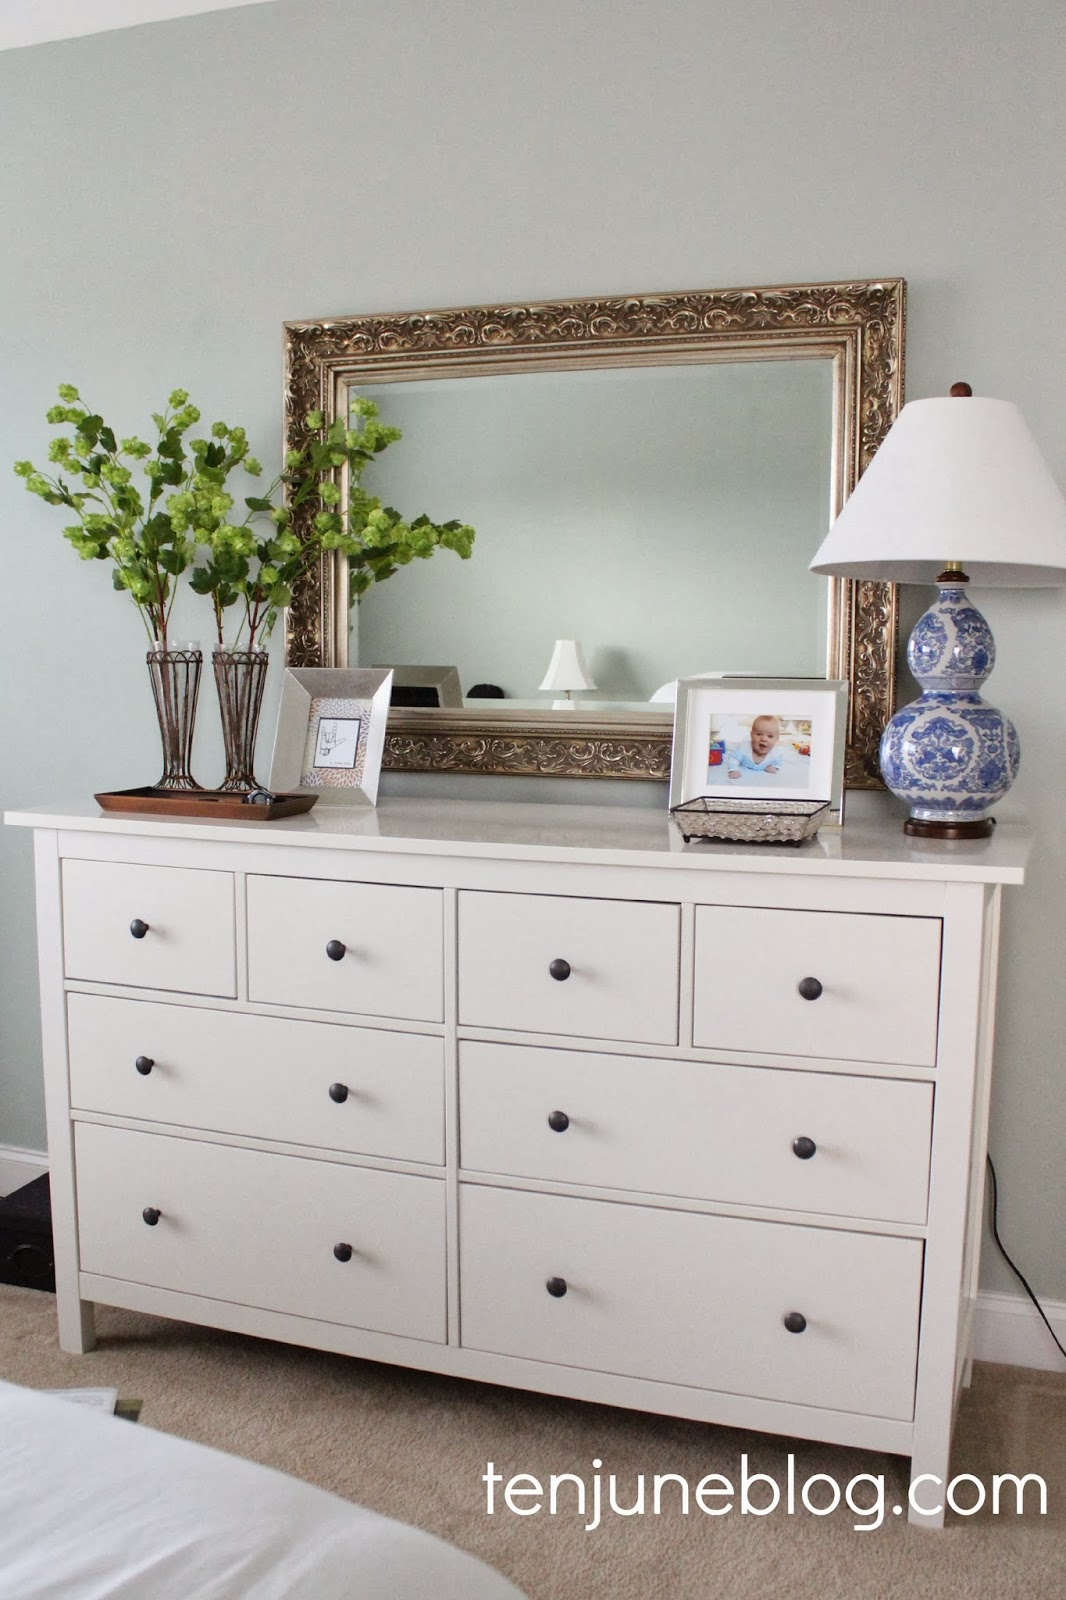 Michaela noelle designs No dresser in master bedroom